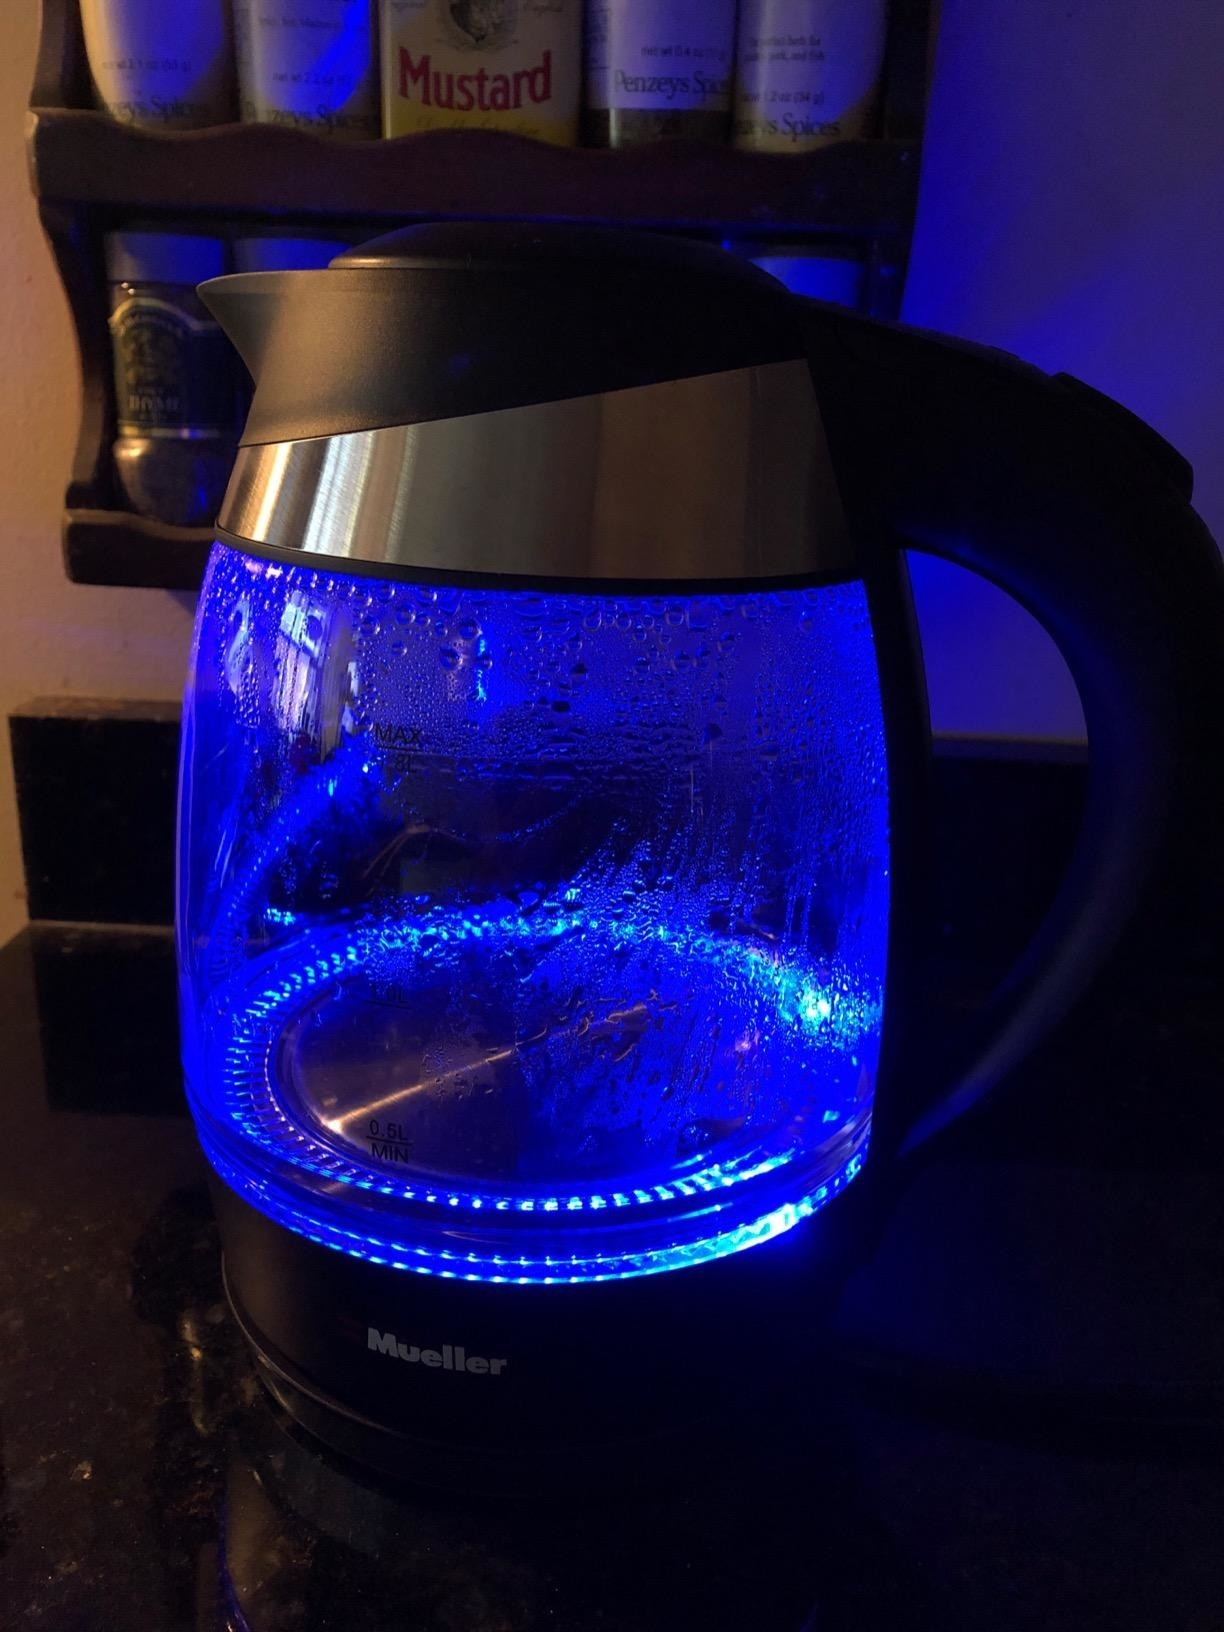 the kettle with blue lights lit up